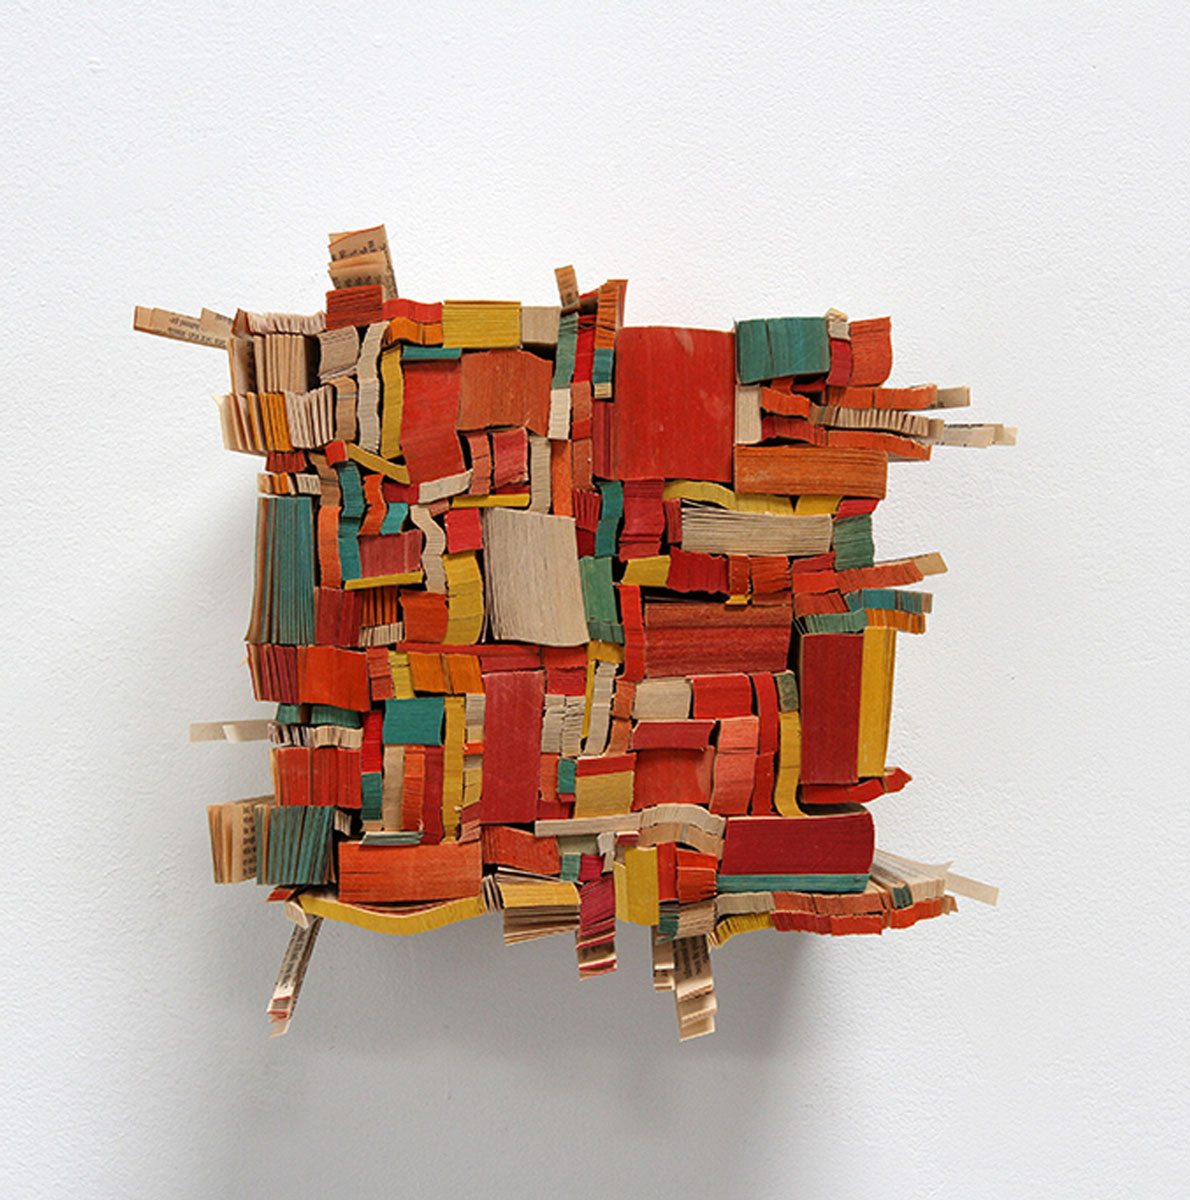 """Afterword , 2014 paperback book slices, wood, bookbinder's adhesive 8 x 8 x 5"""""""